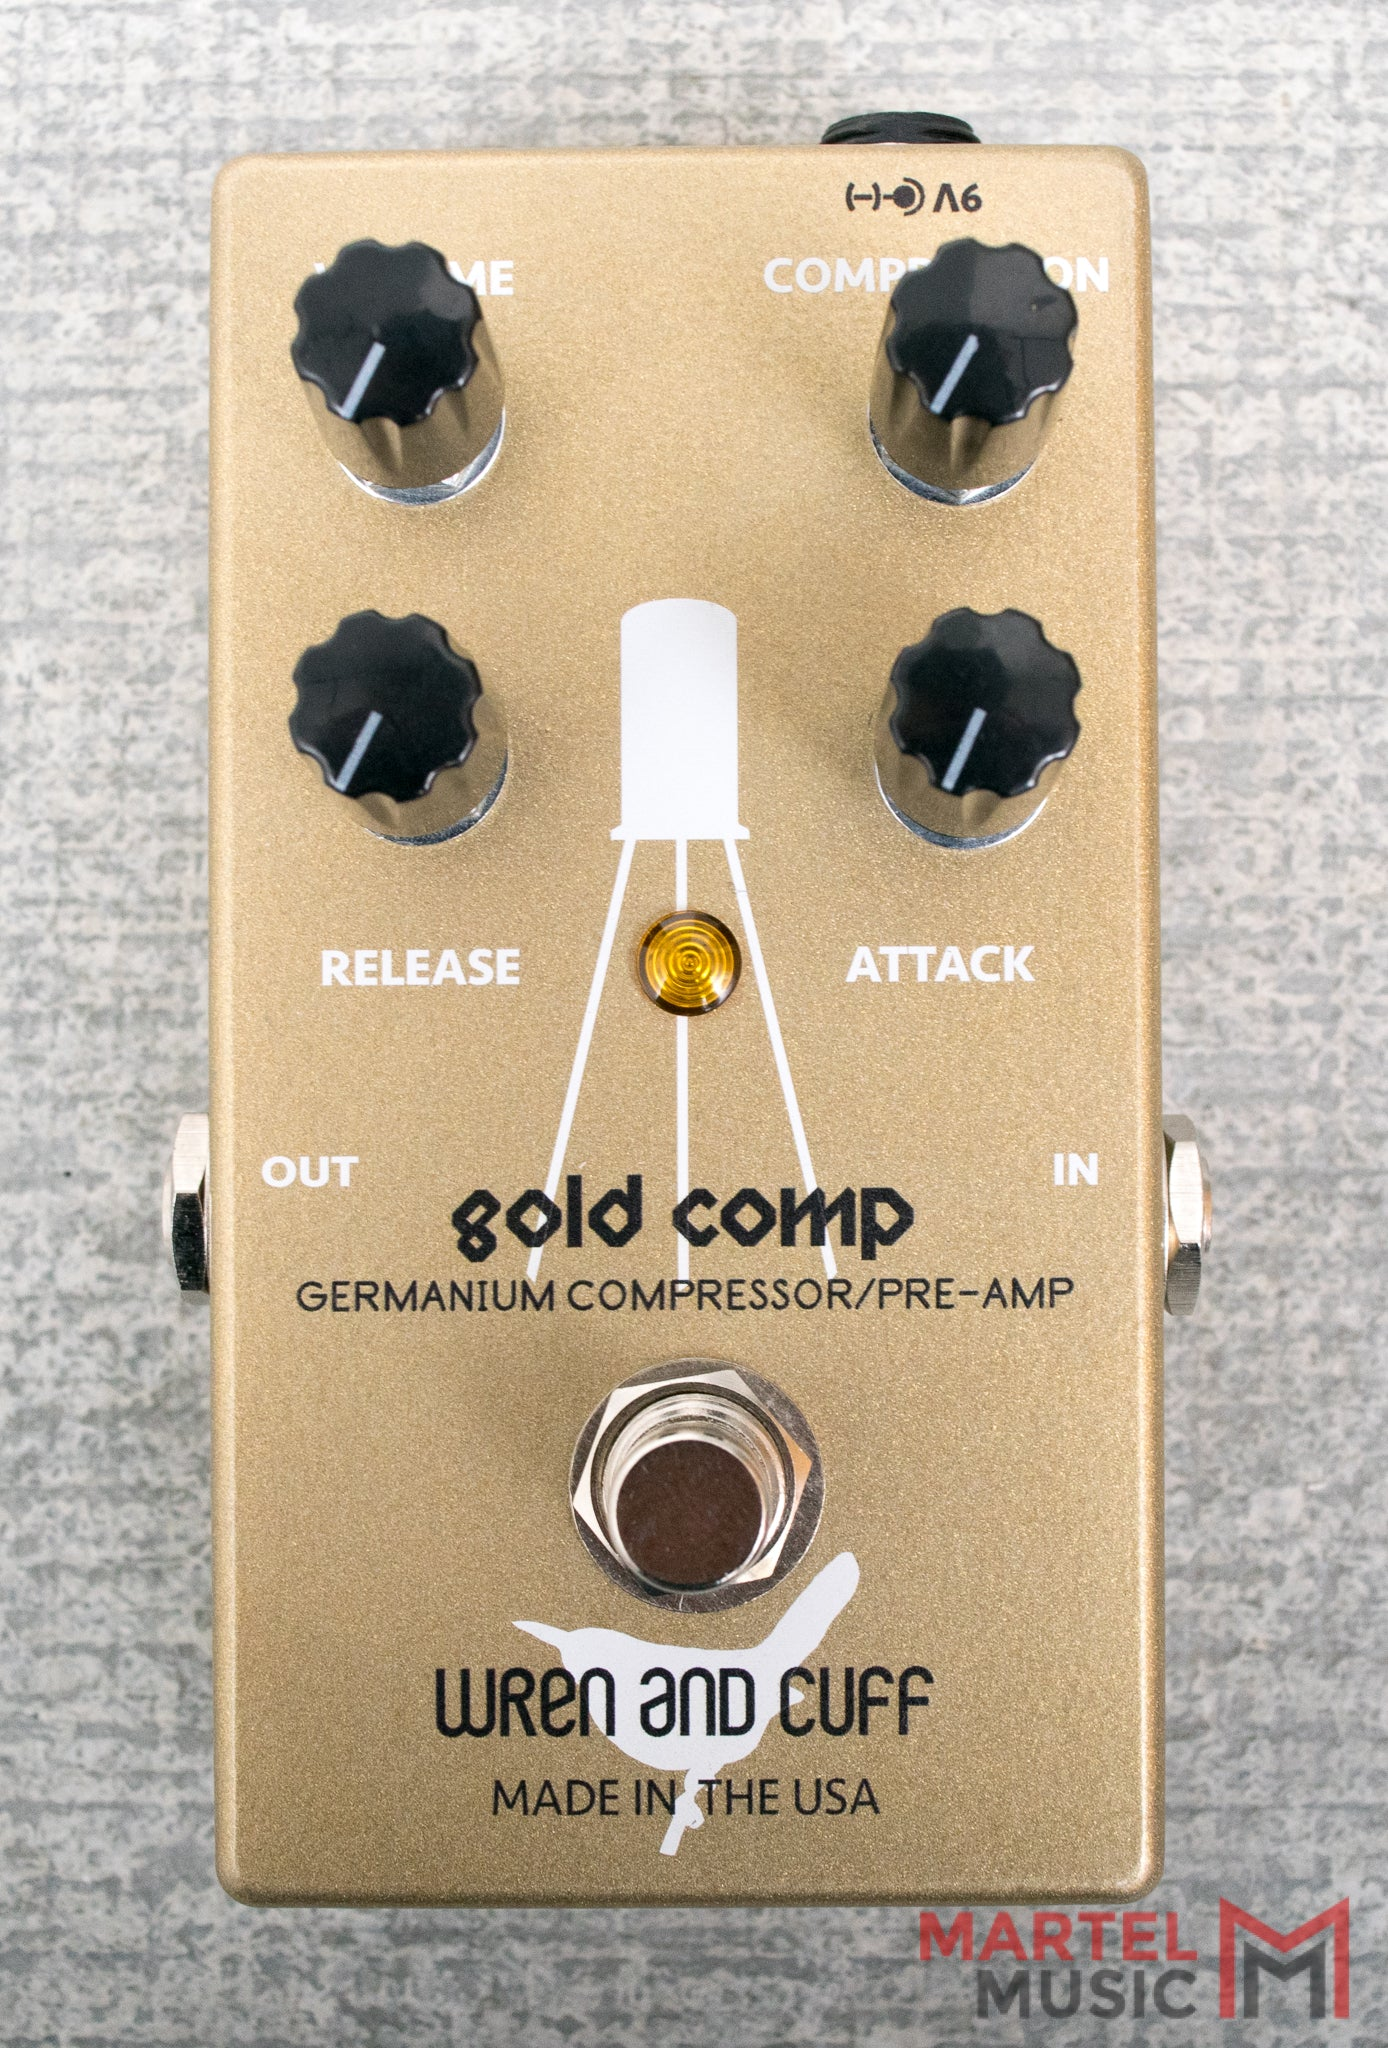 Wren And Cuff Gold Comp Compressor Martel Music Store Opamps Part I Open Labs